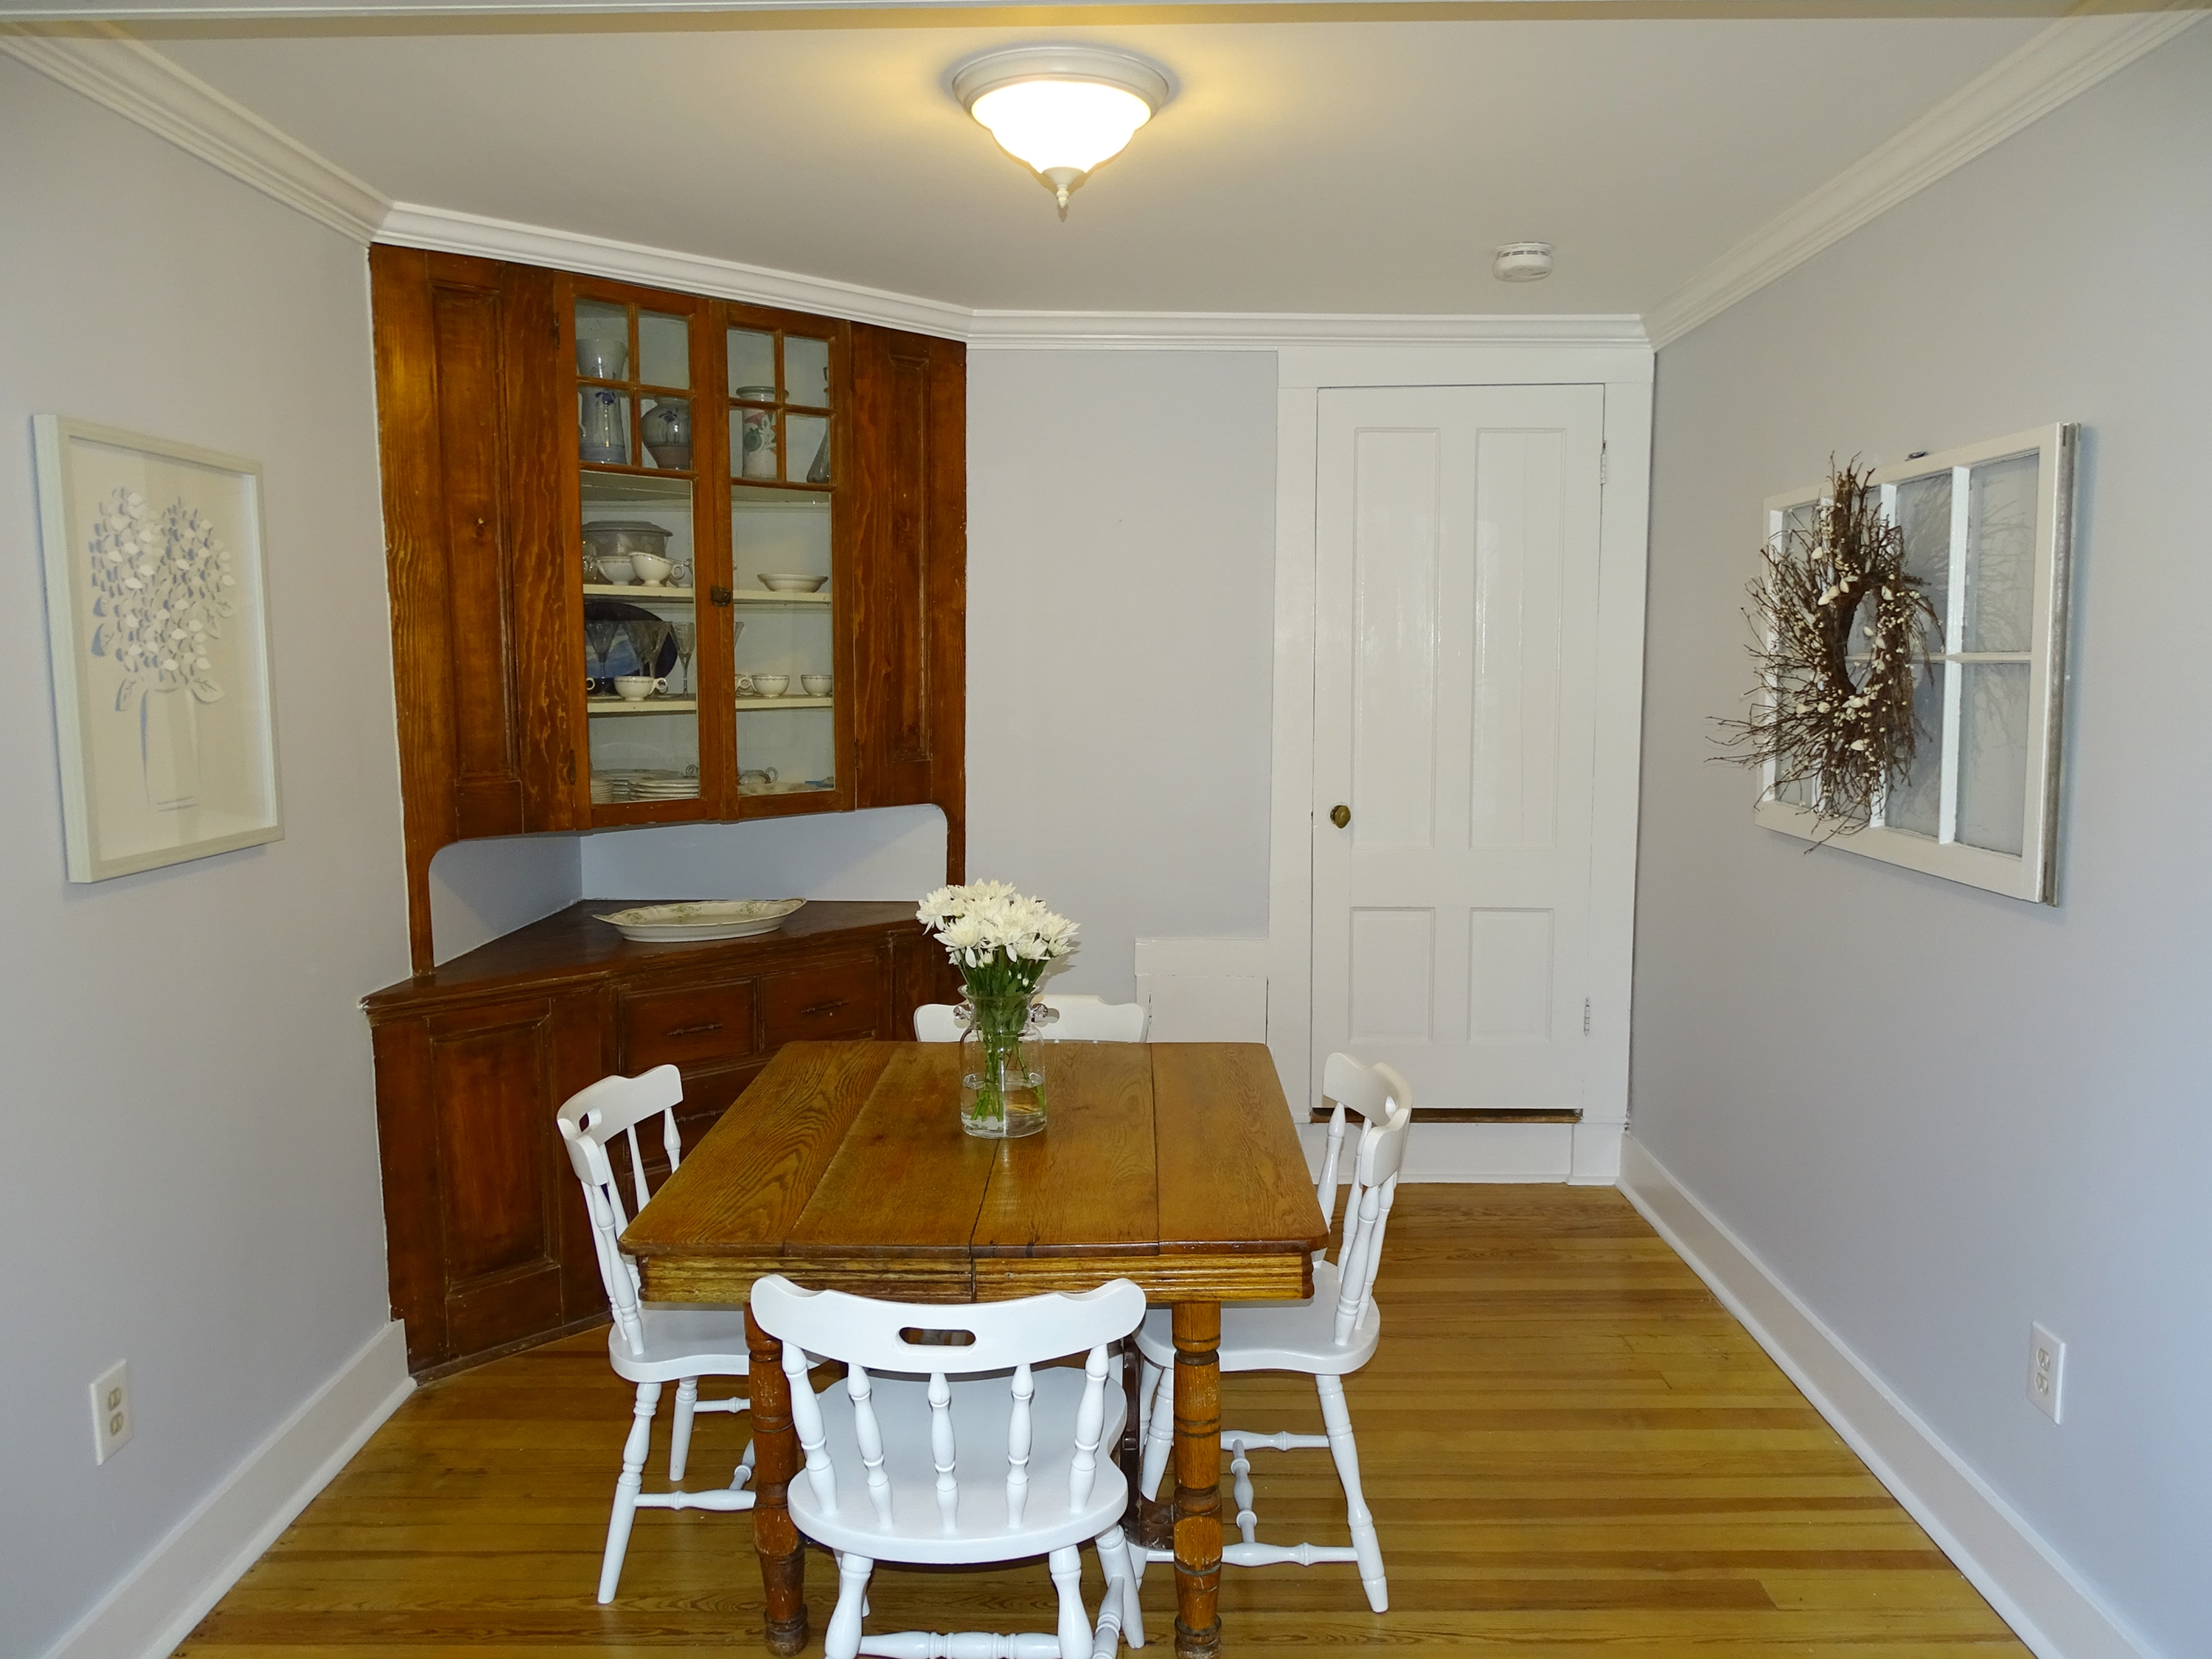 dining room photo after home makeover in harwich, ma (cape cod)